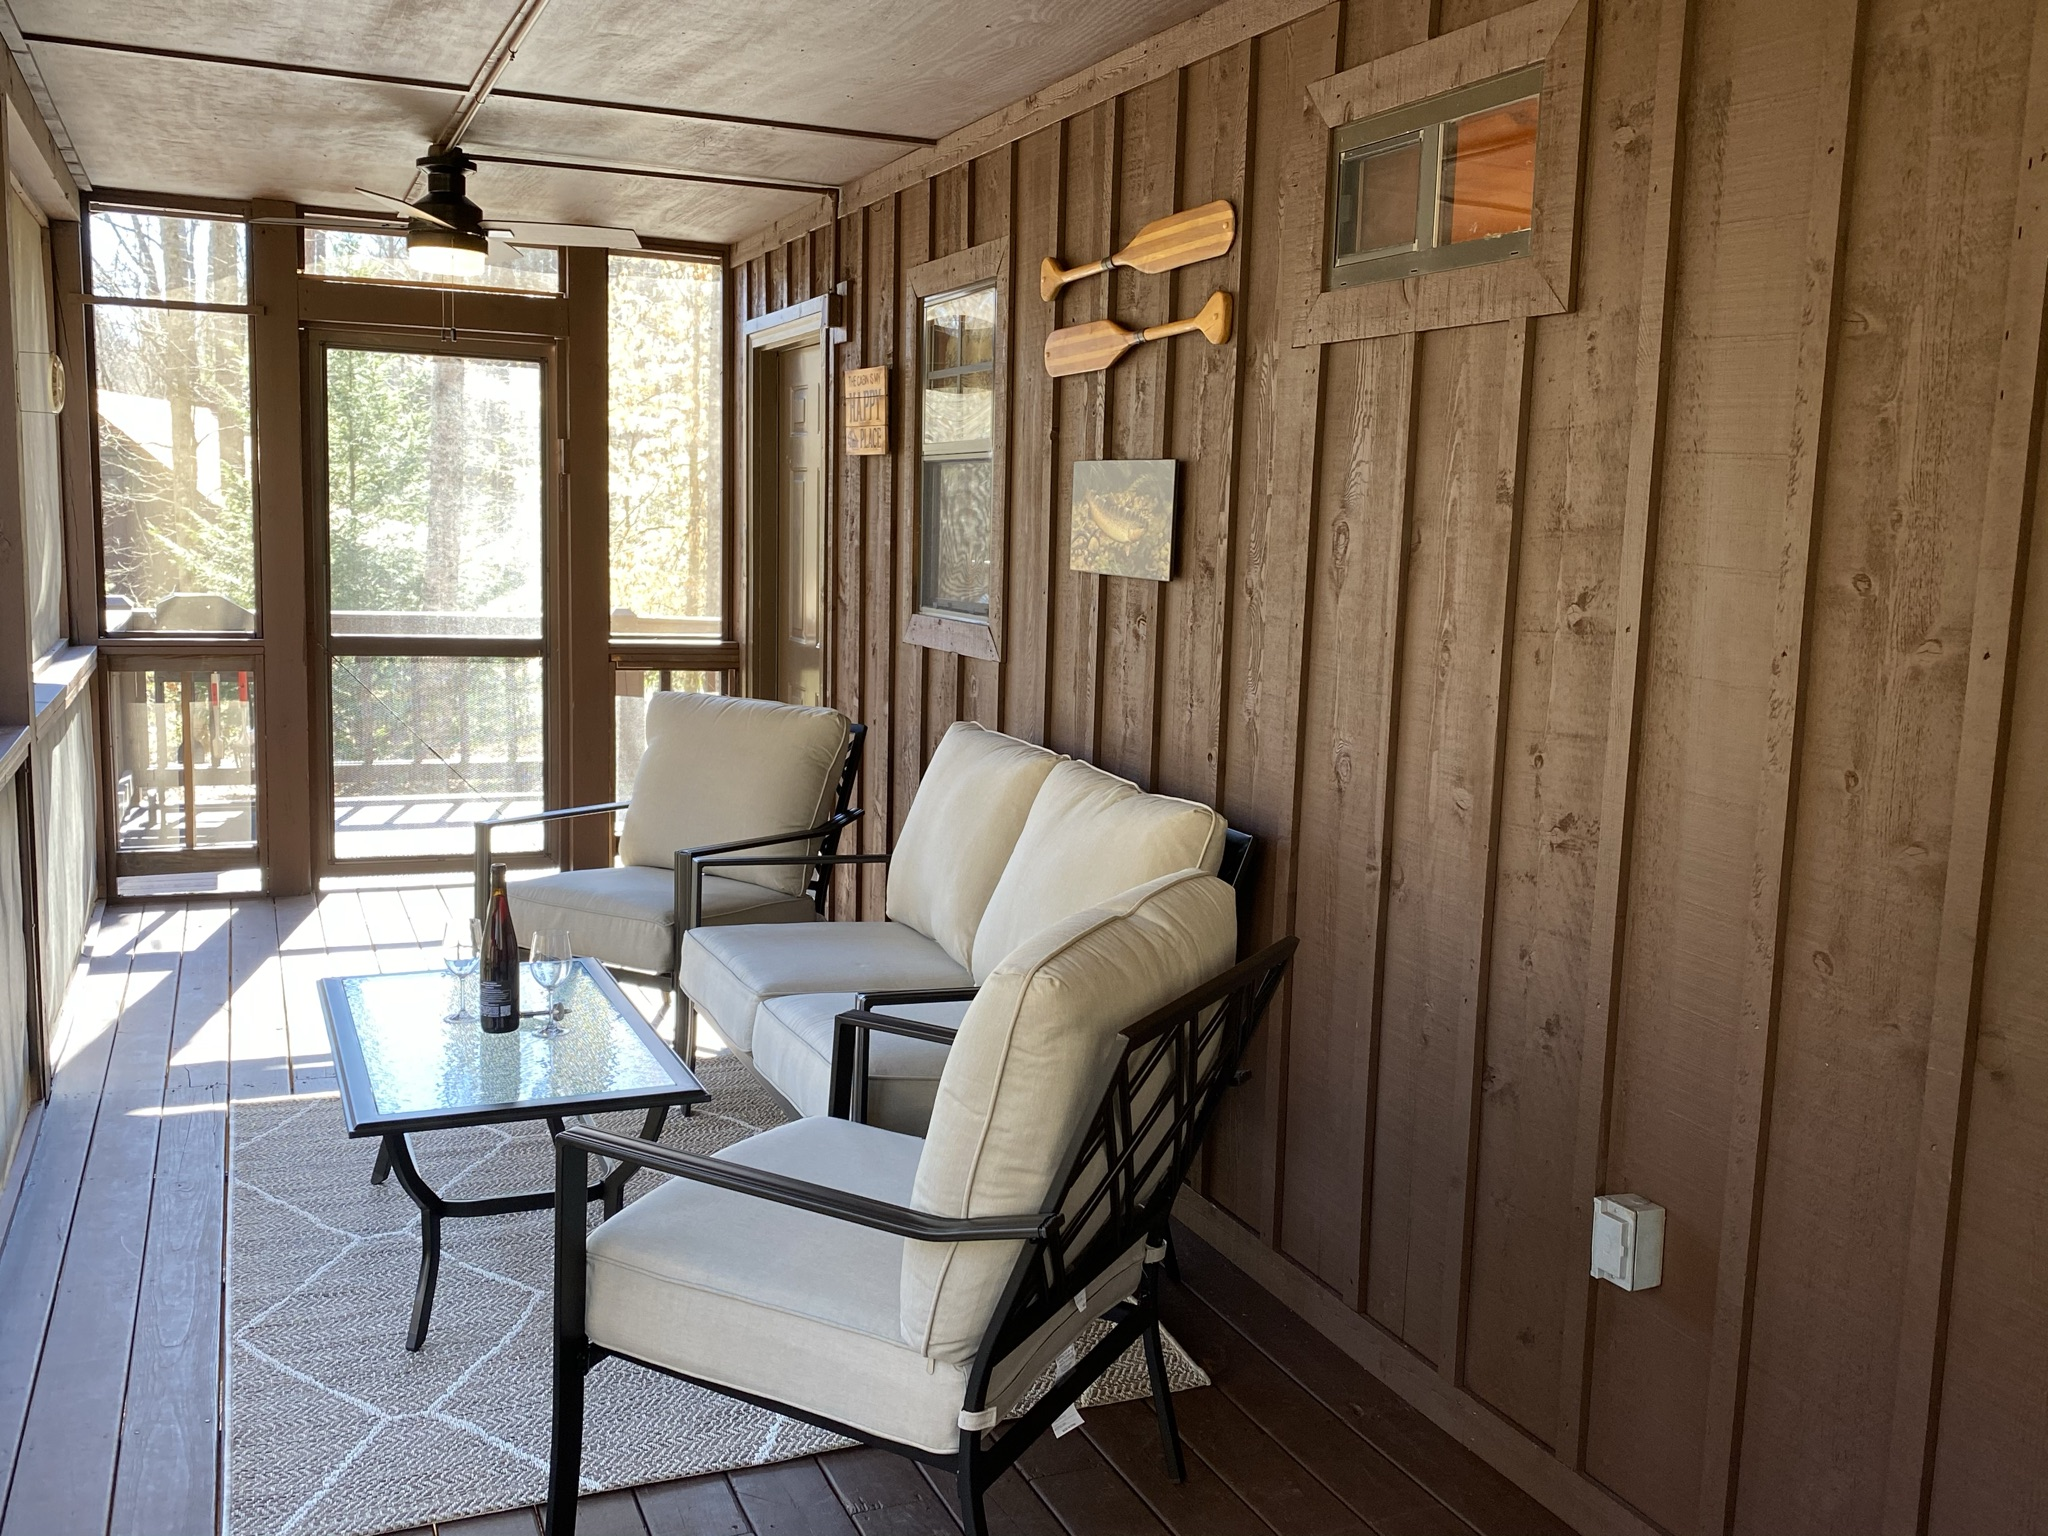 Comfortable patio furniture to enjoy the views from the screened porch